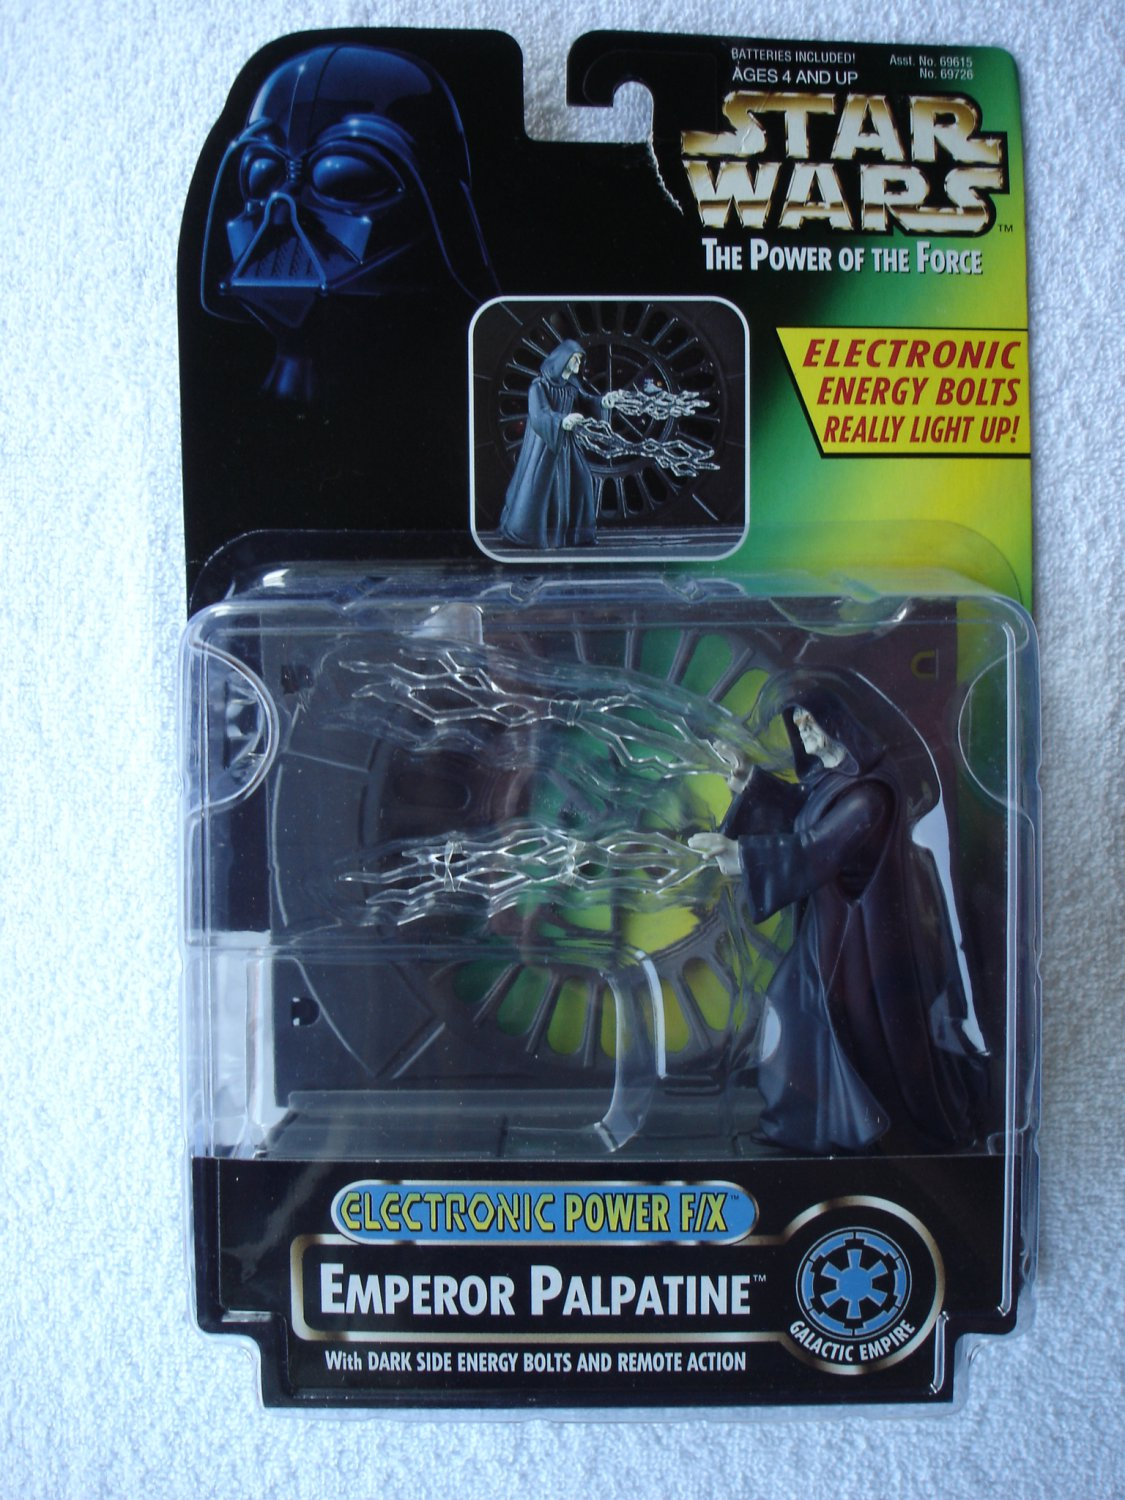 Star Wars POTF Electronic Power F/X Emperor Palpatine